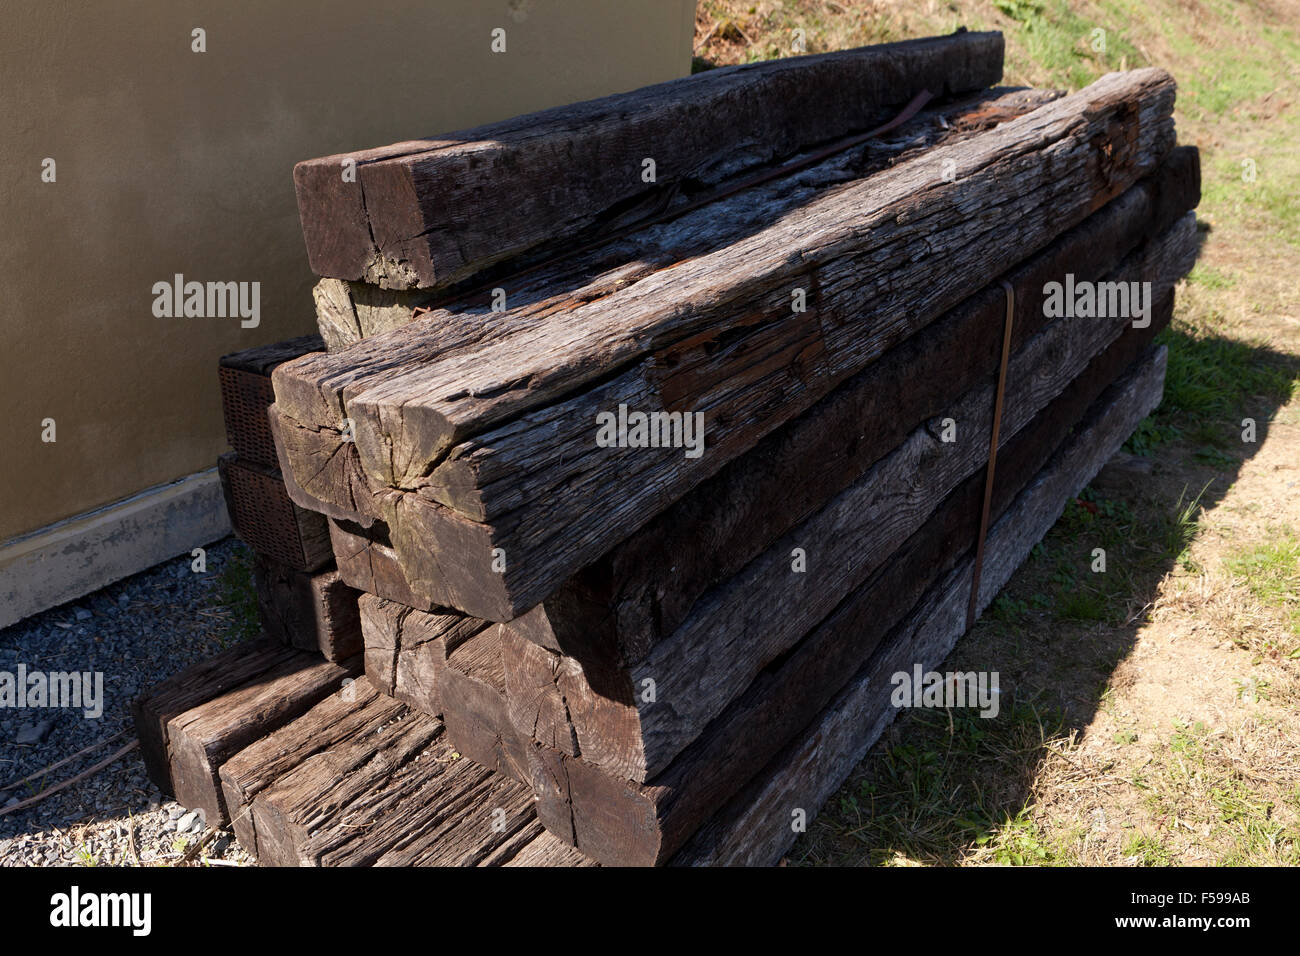 Used railroad ties - USA Stock Photo: 89330035 - Alamy